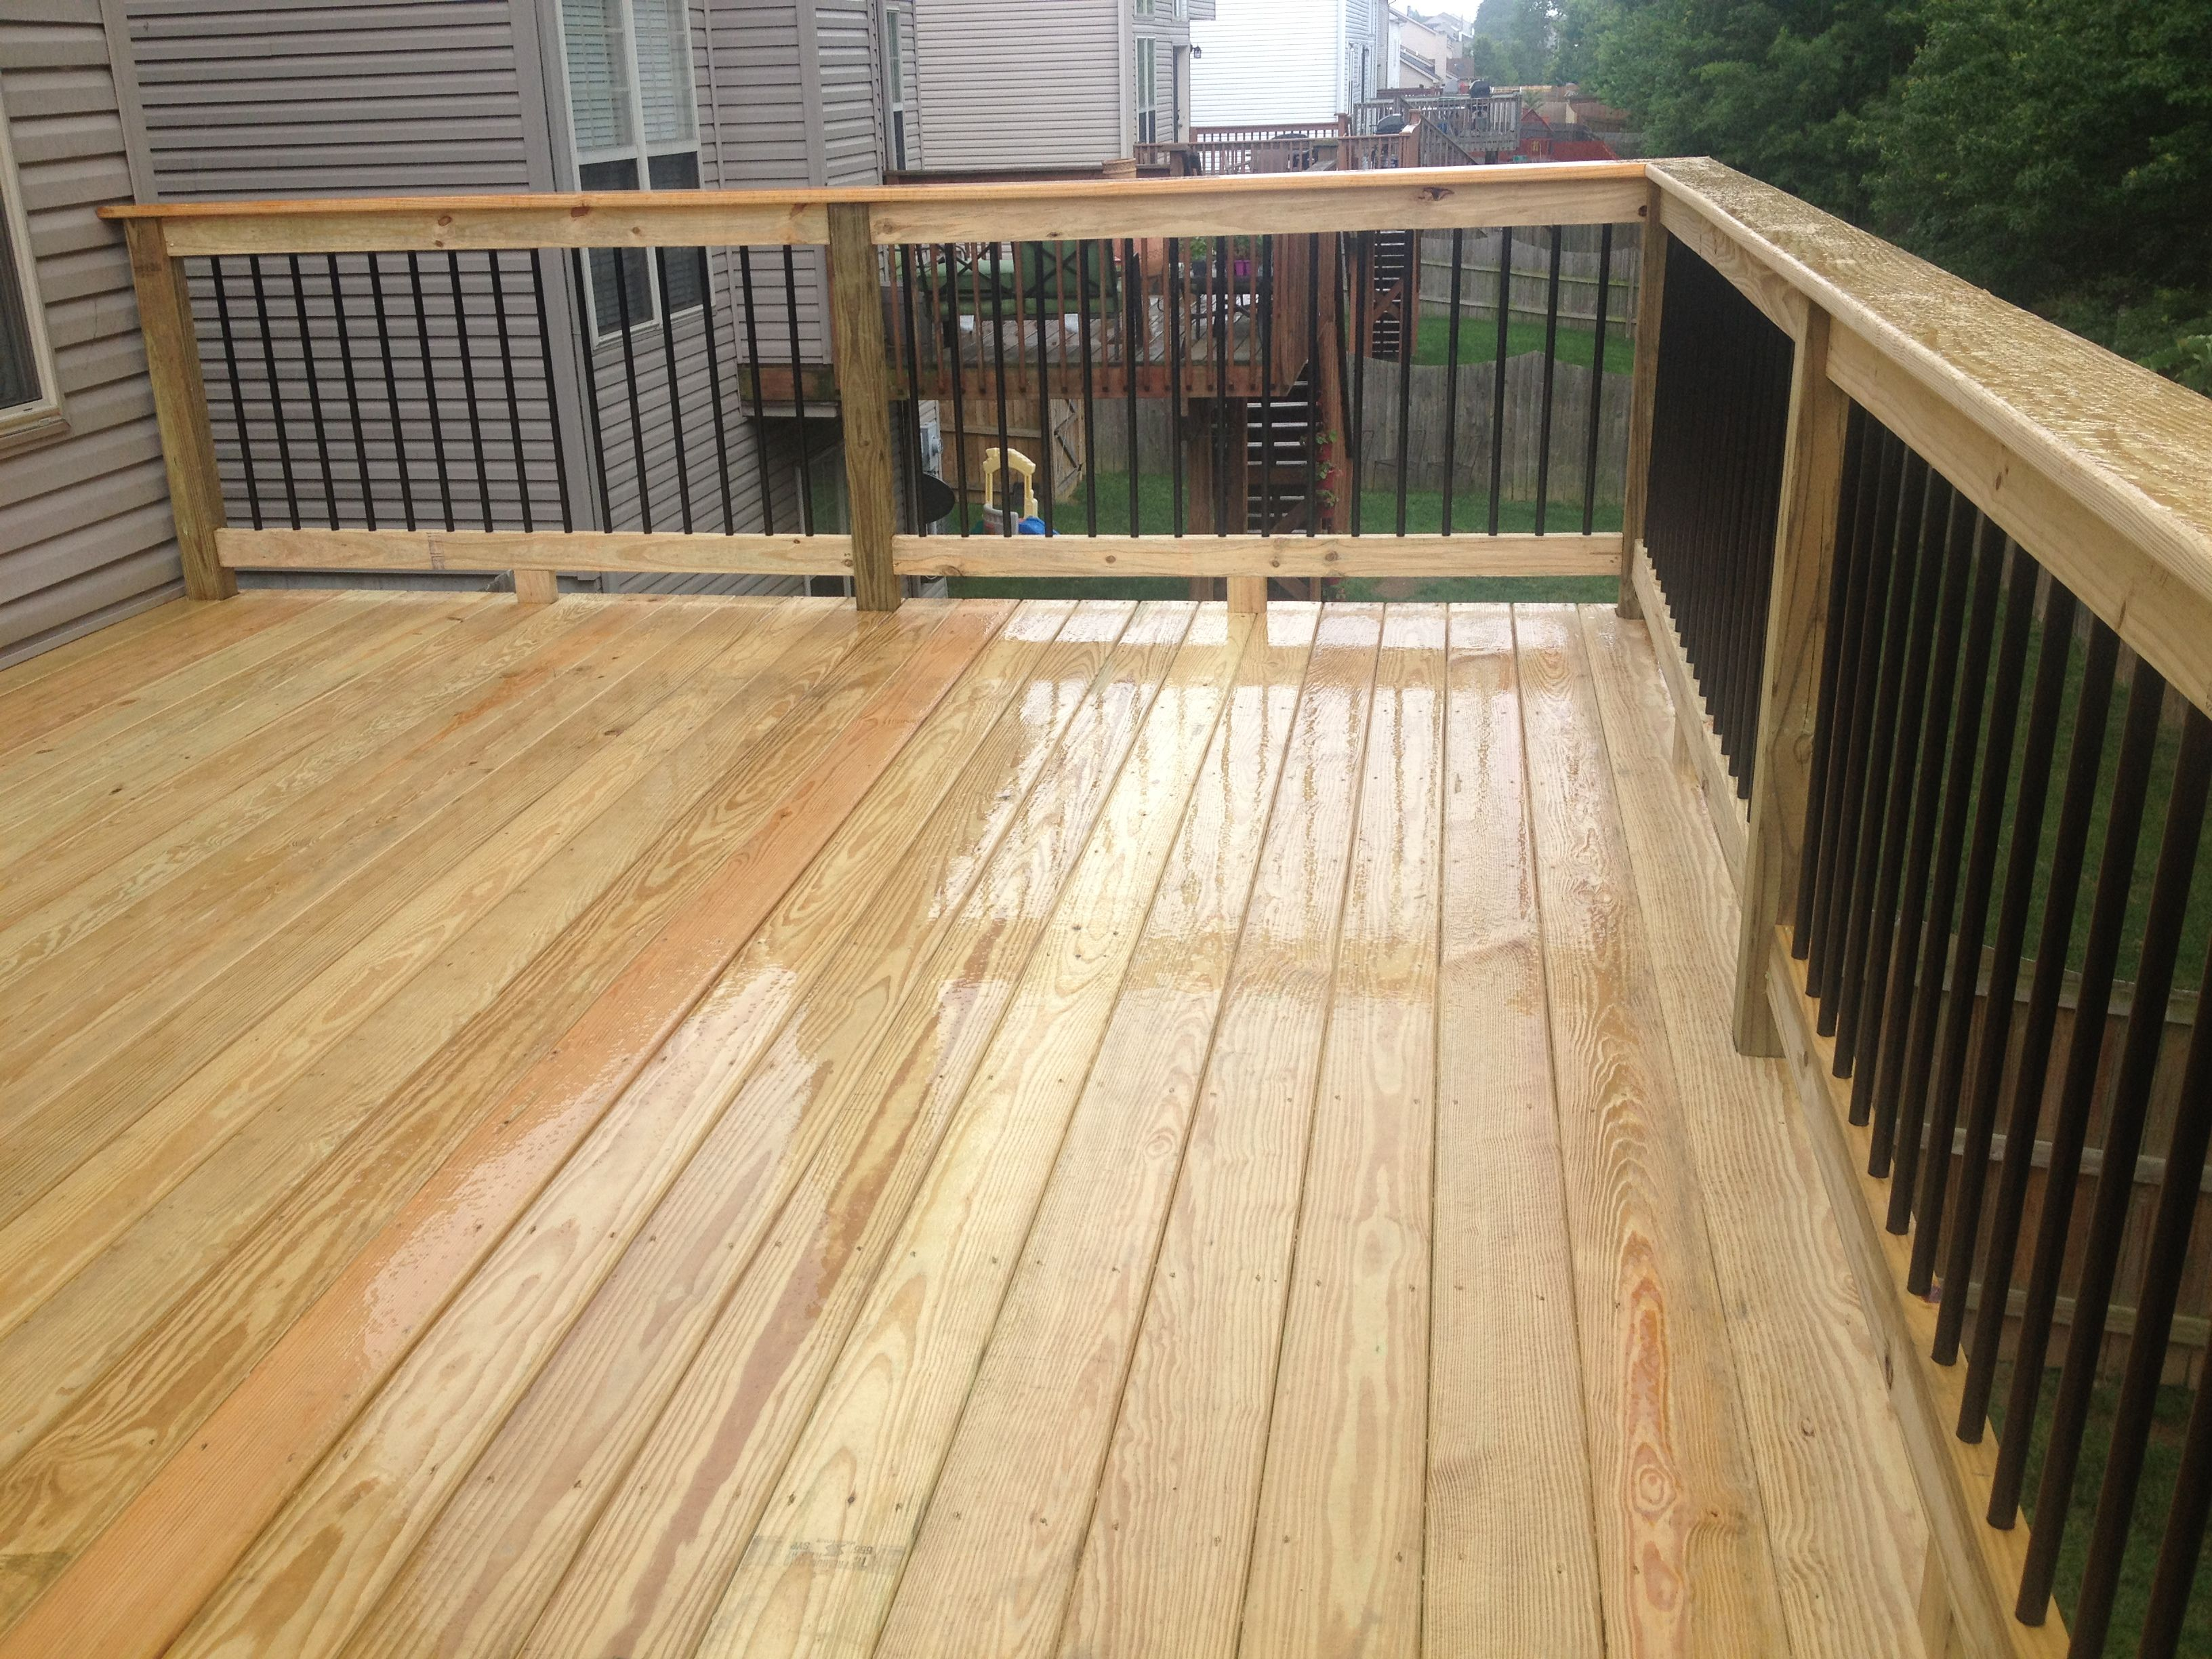 Pin By Deckadent Designs On Wood Decks Deck Railing Design Wood